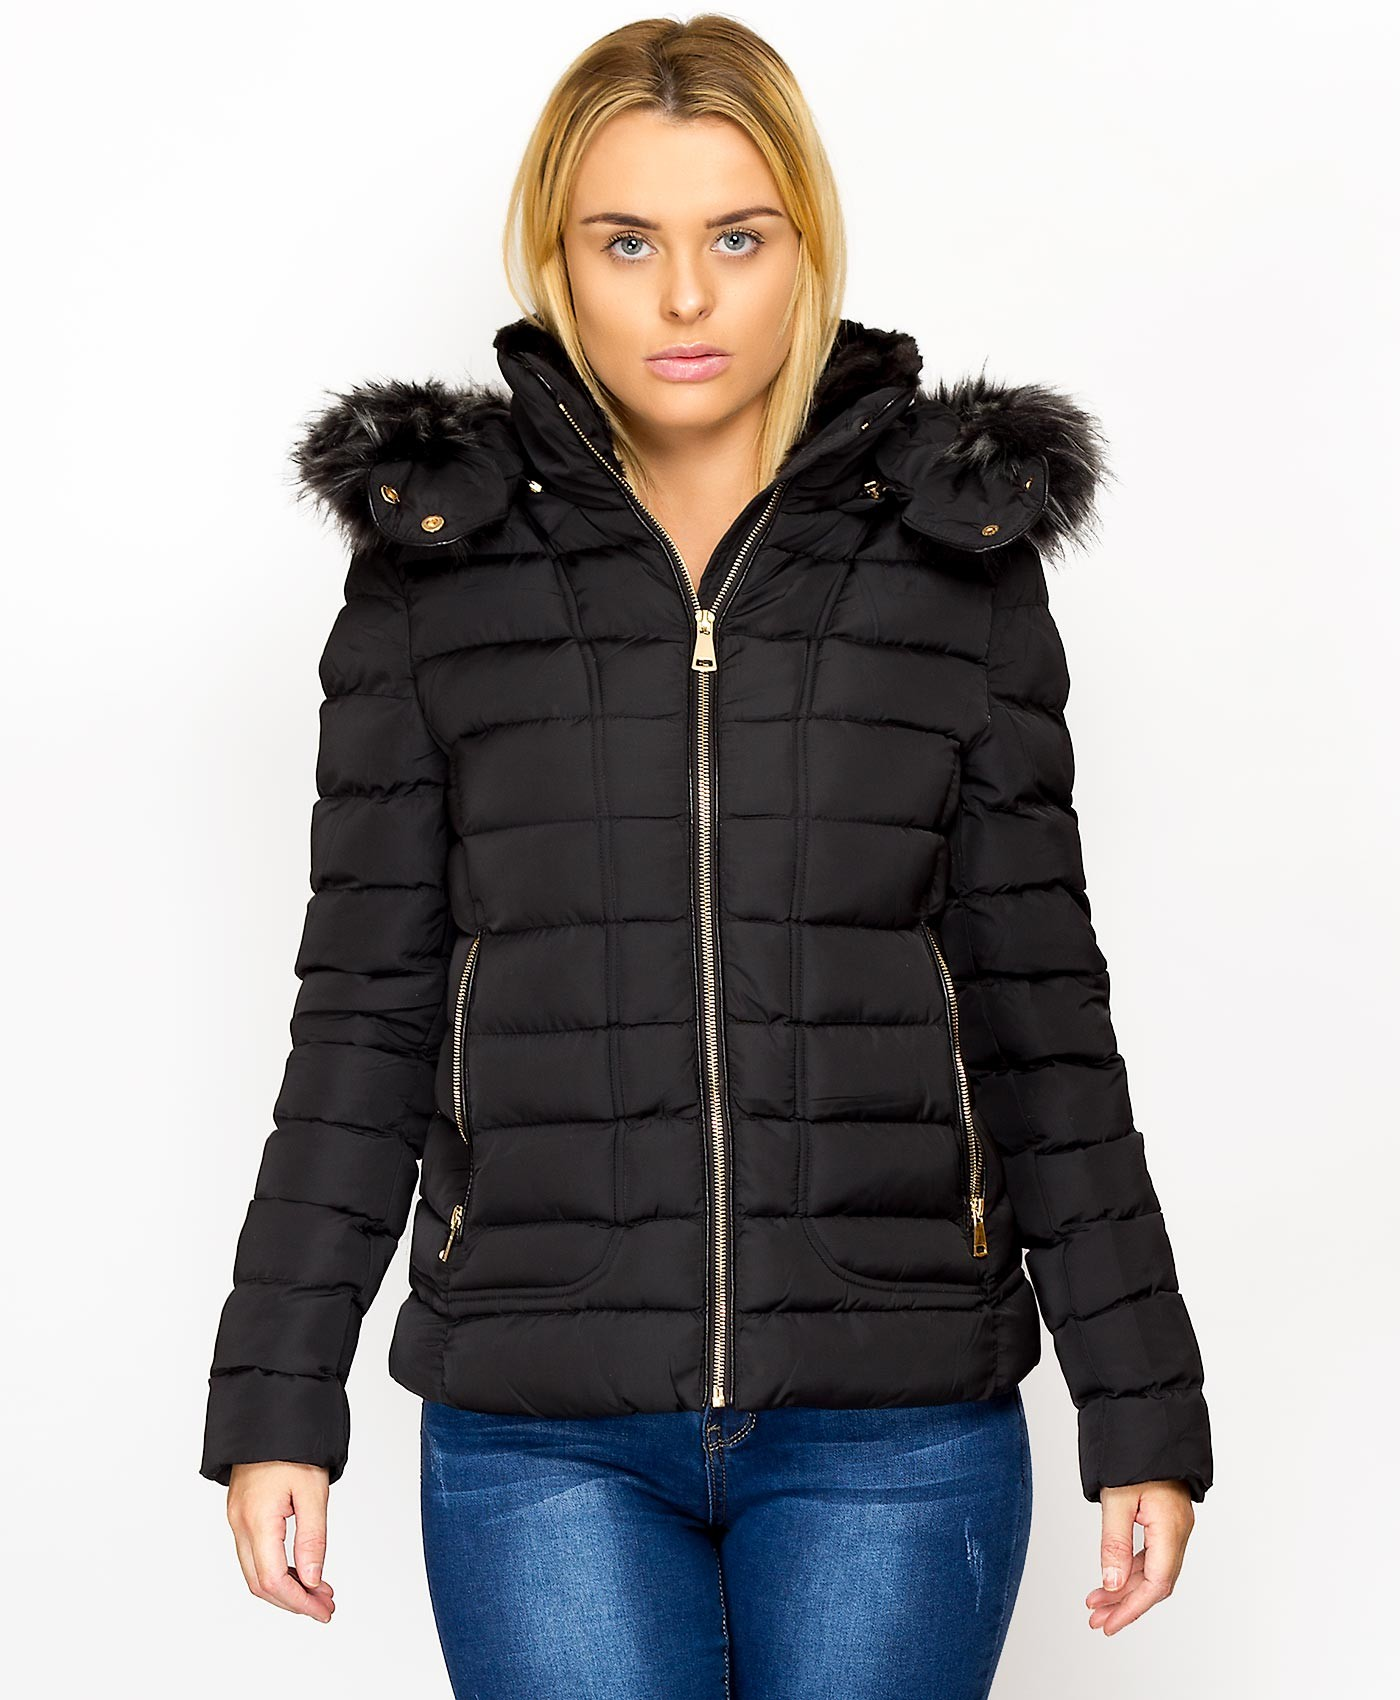 Black-Padded-Quilted-Fur-Hooded-Zip-Back-Jacket-2